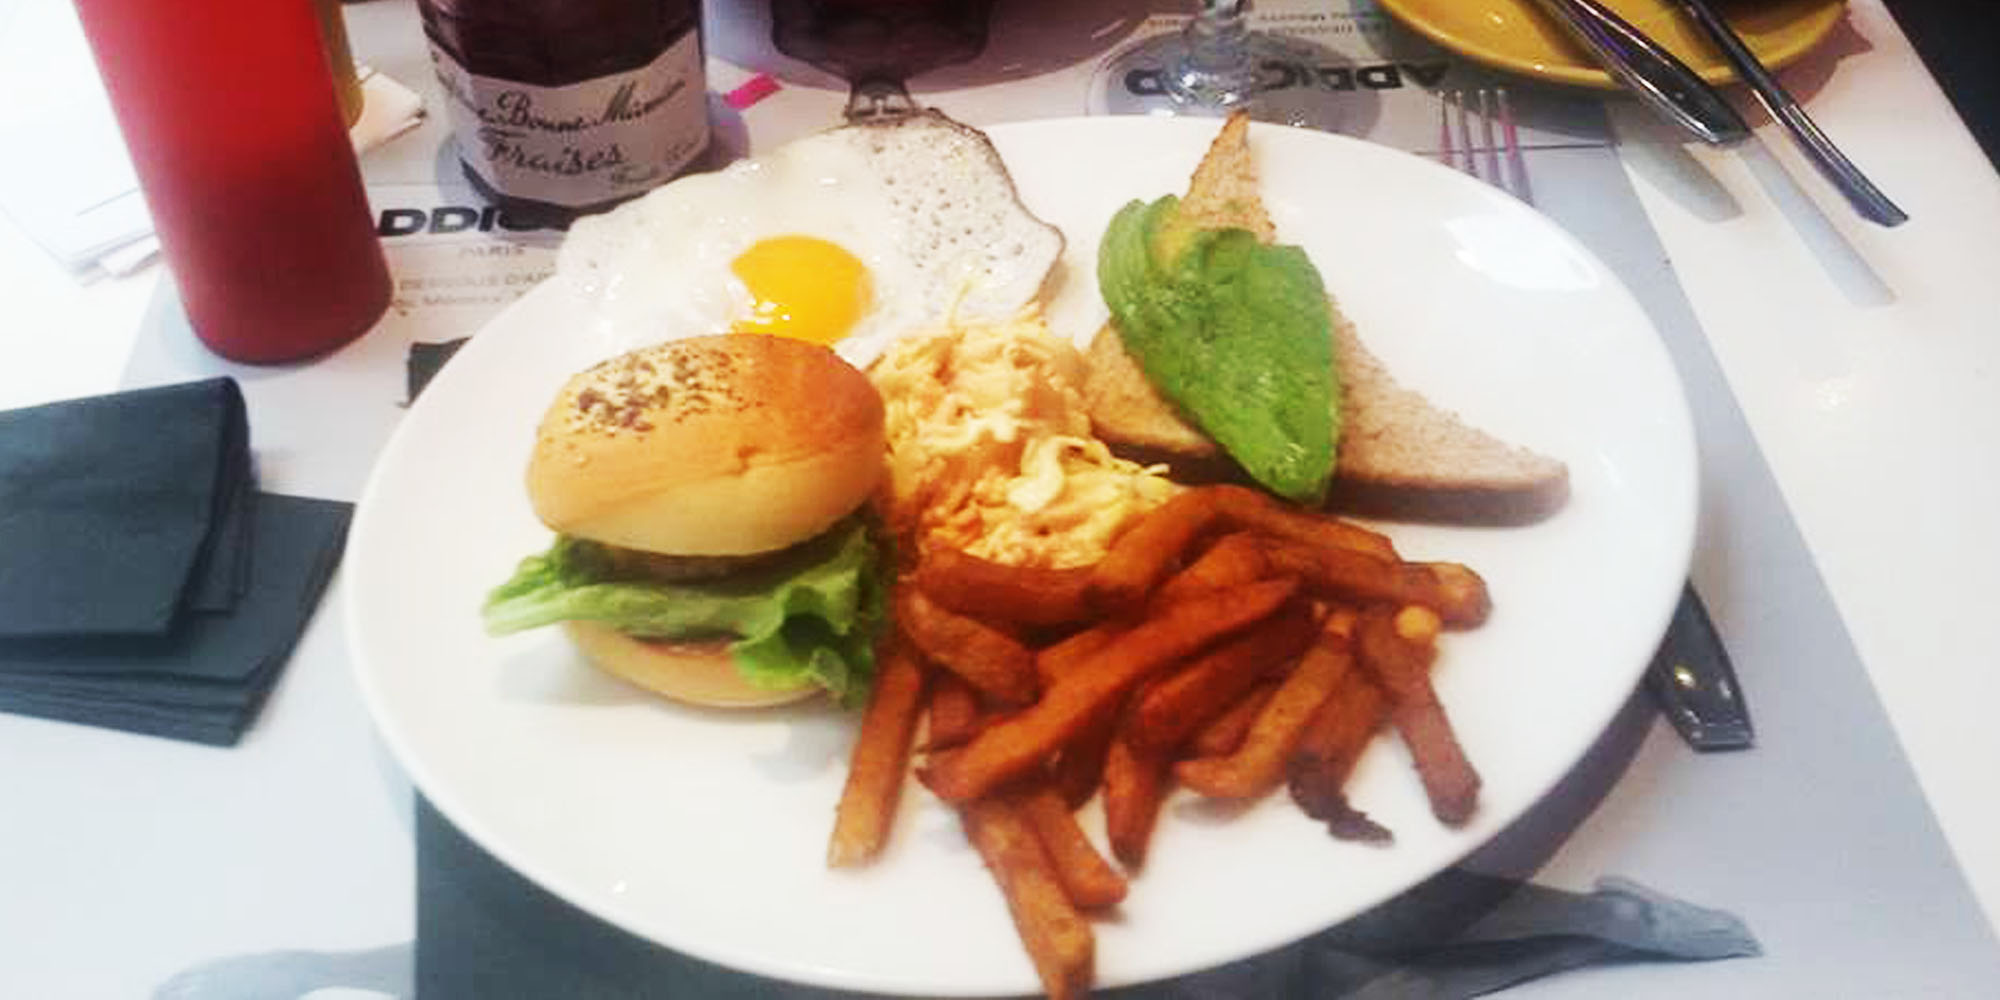 Brunch Tata Burger (75004 Paris 4ème)